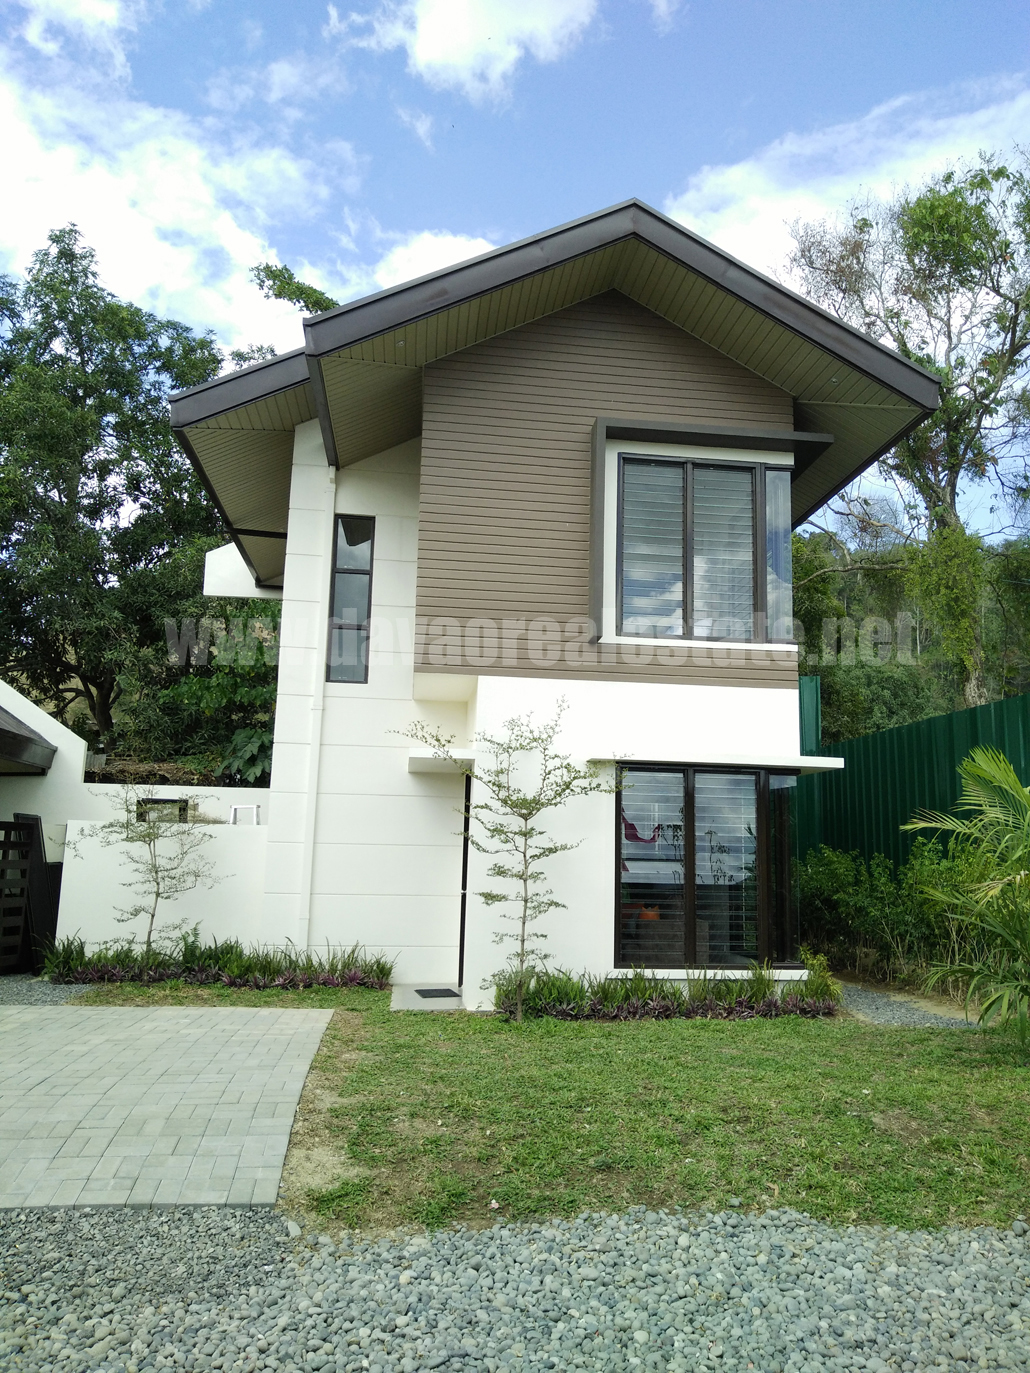 Narra Park Residences Two Storey House Model Buhangin For Sale